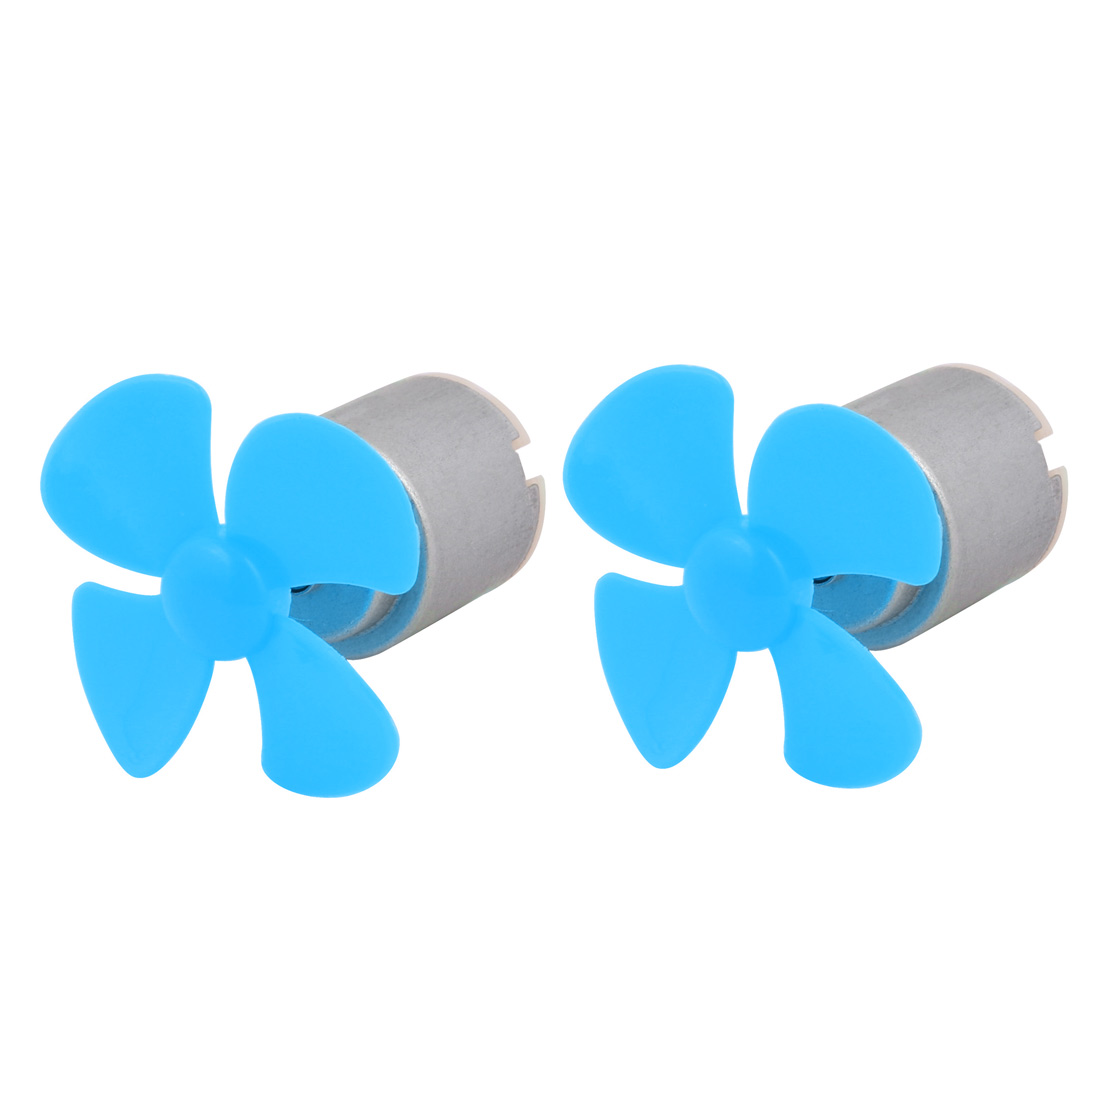 2Pcs DC 3V 0.13A 11500RPM Large Torque Motor 4-Vane 40mm Dia Propeller Blue for RC Model